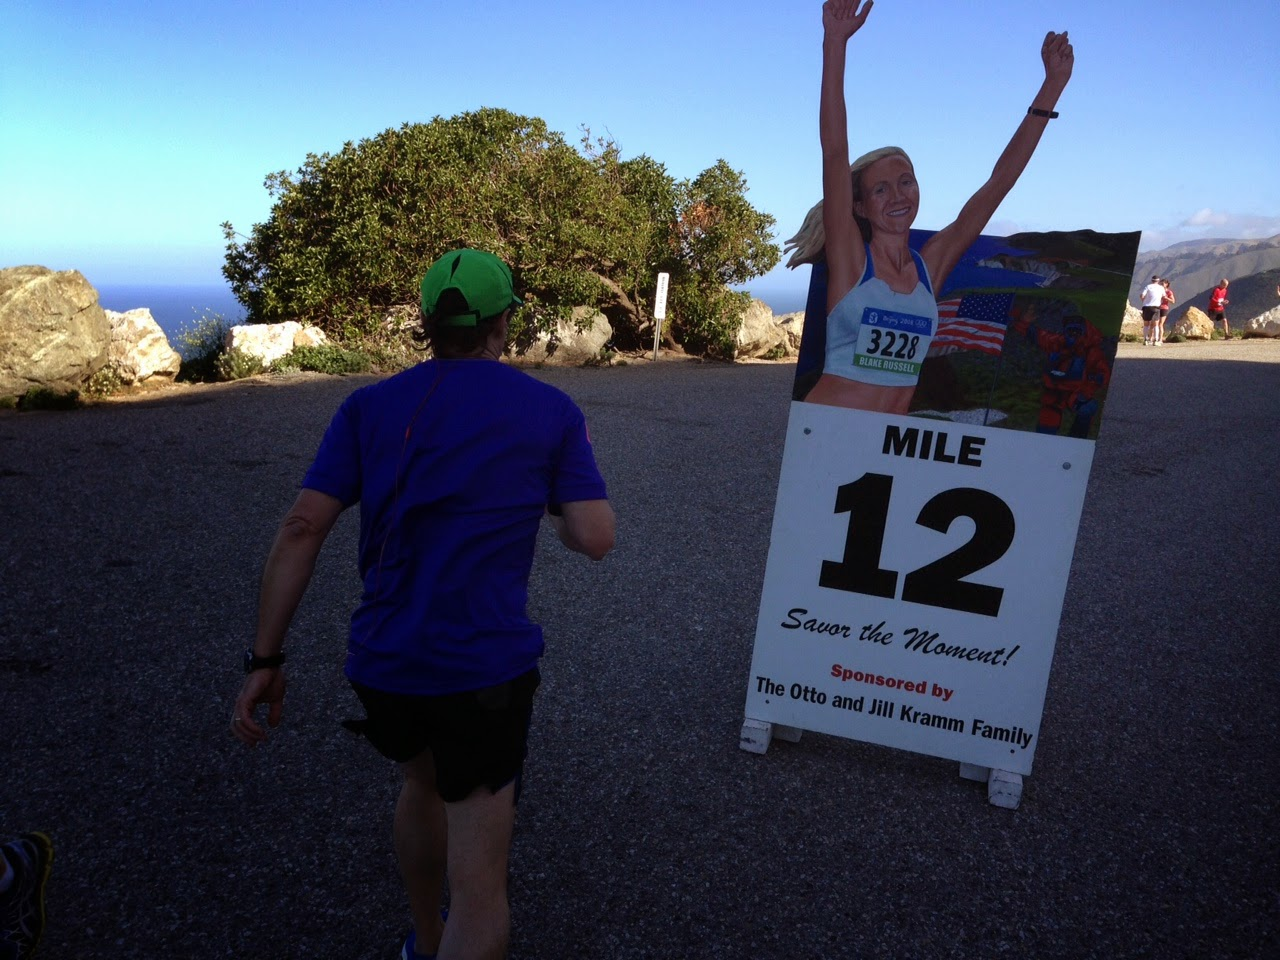 Hurricane Point - Big Sur International Marathon Mile 12